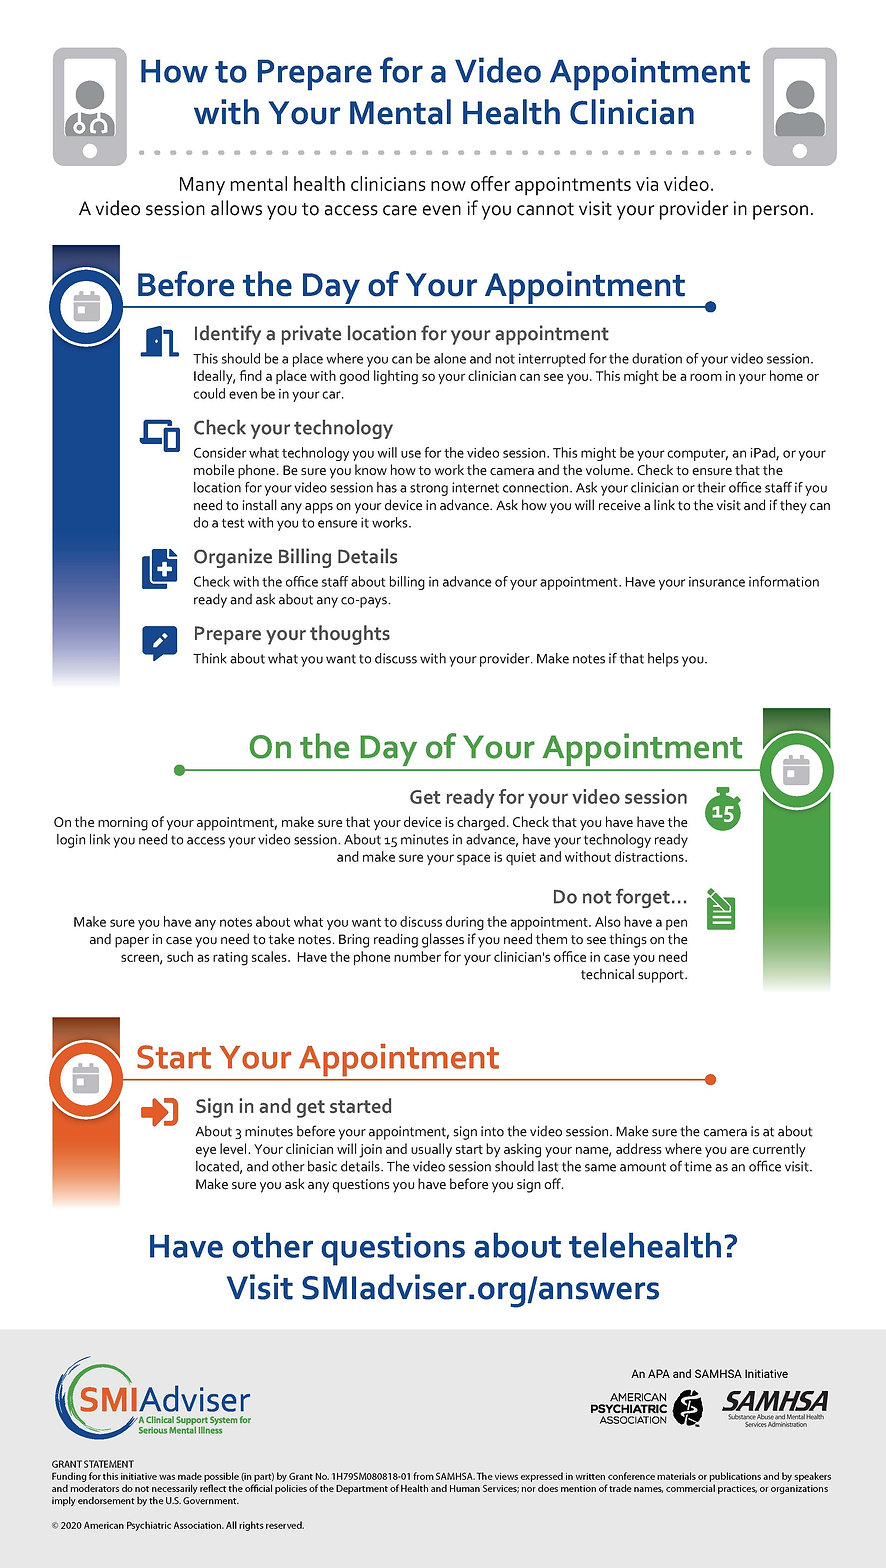 How-to-Prepare-for-a-Video-Appointment (